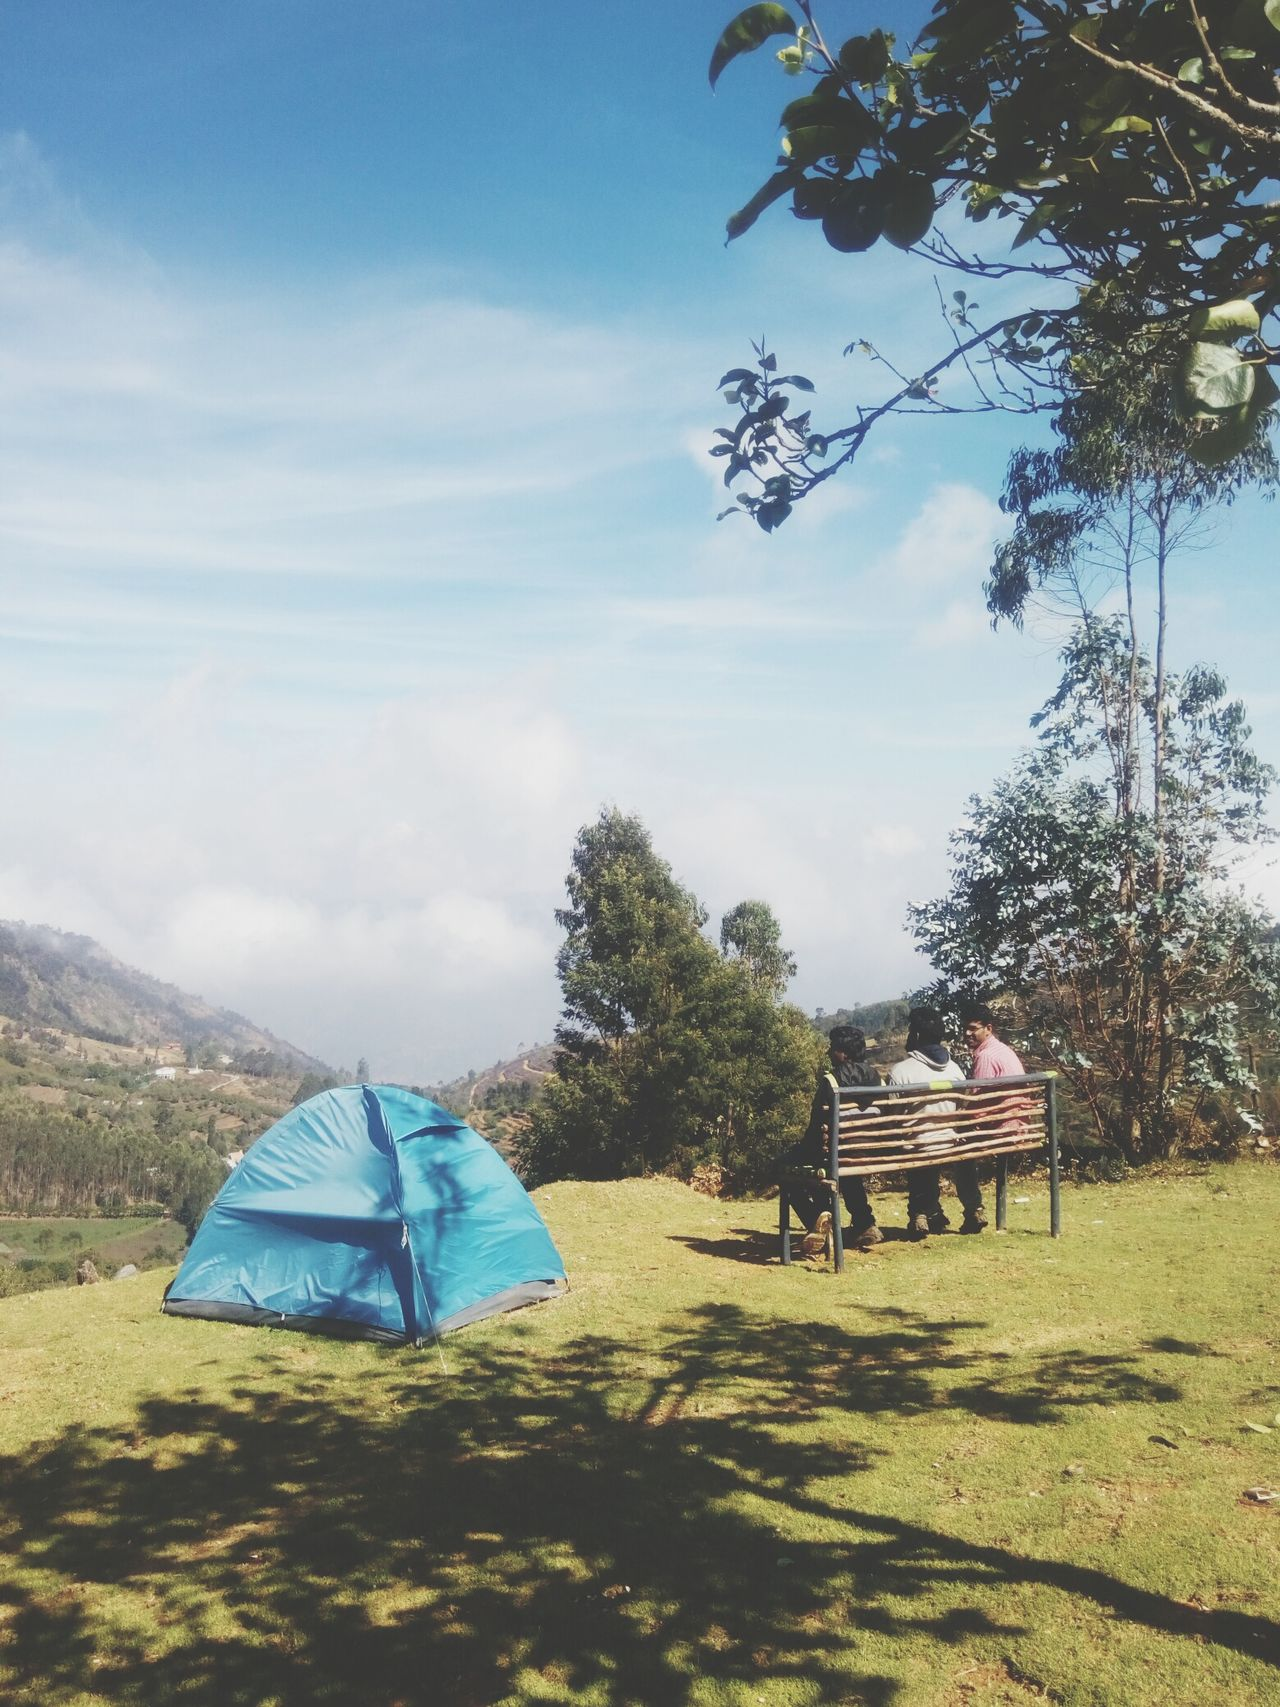 The view from up above! Sky Outdoors Nature Beauty In Nature Scenics Cloud - Sky Kodaidairies Kodaikanal Travel Destinations Travel Photography Friendship Hillside Cliff Camping Nature